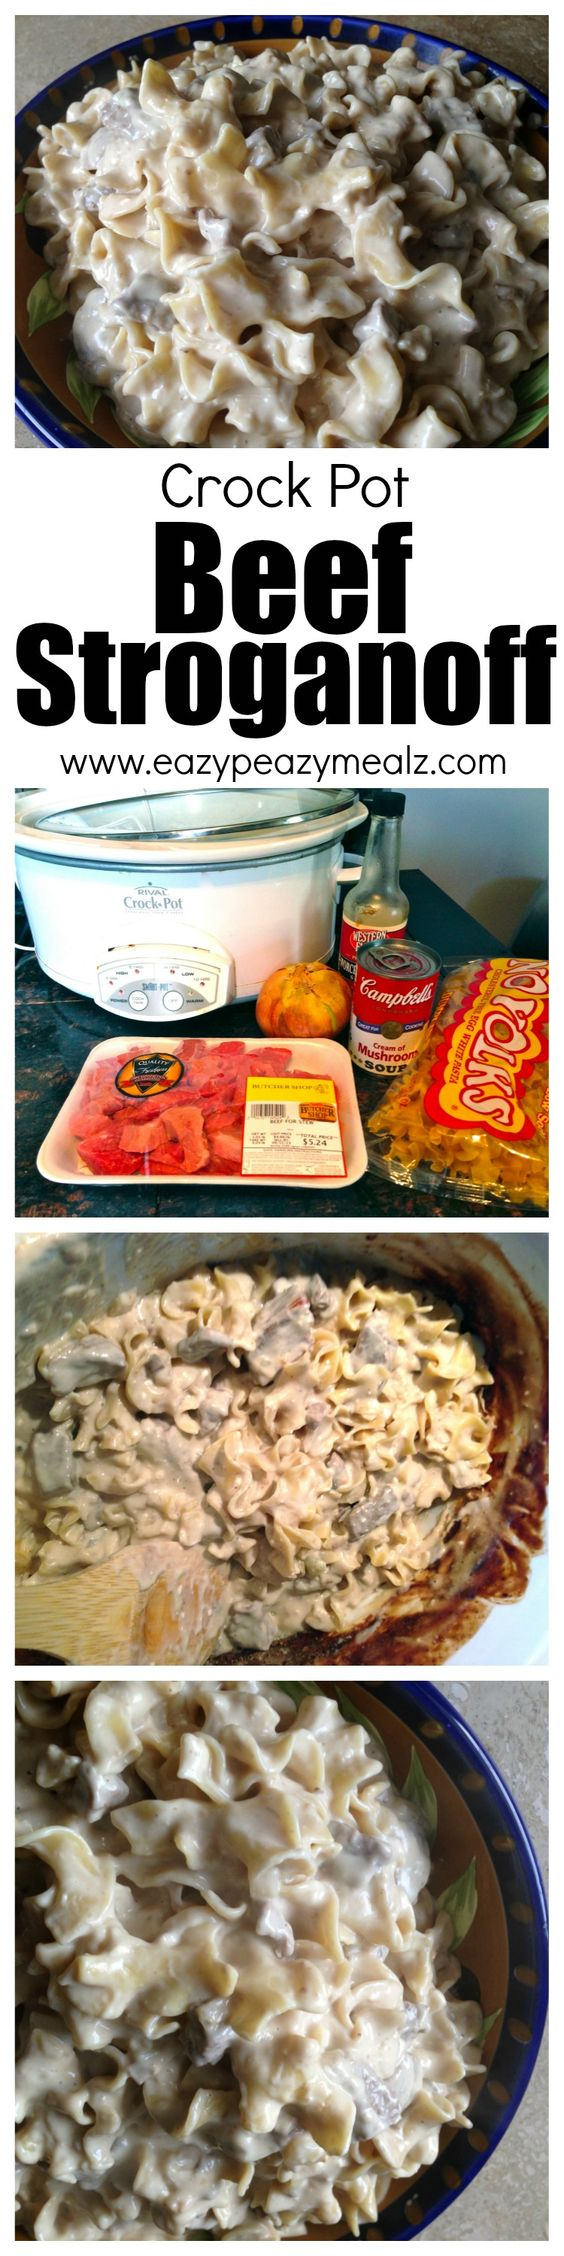 Fast, easy to make, beef stroganoff, that is family friendly and cooked in the Slow Cooker or Crock Pot! This is one of the most popular recipes on this blog and for good reason. - Eazy Peazy Mealz: